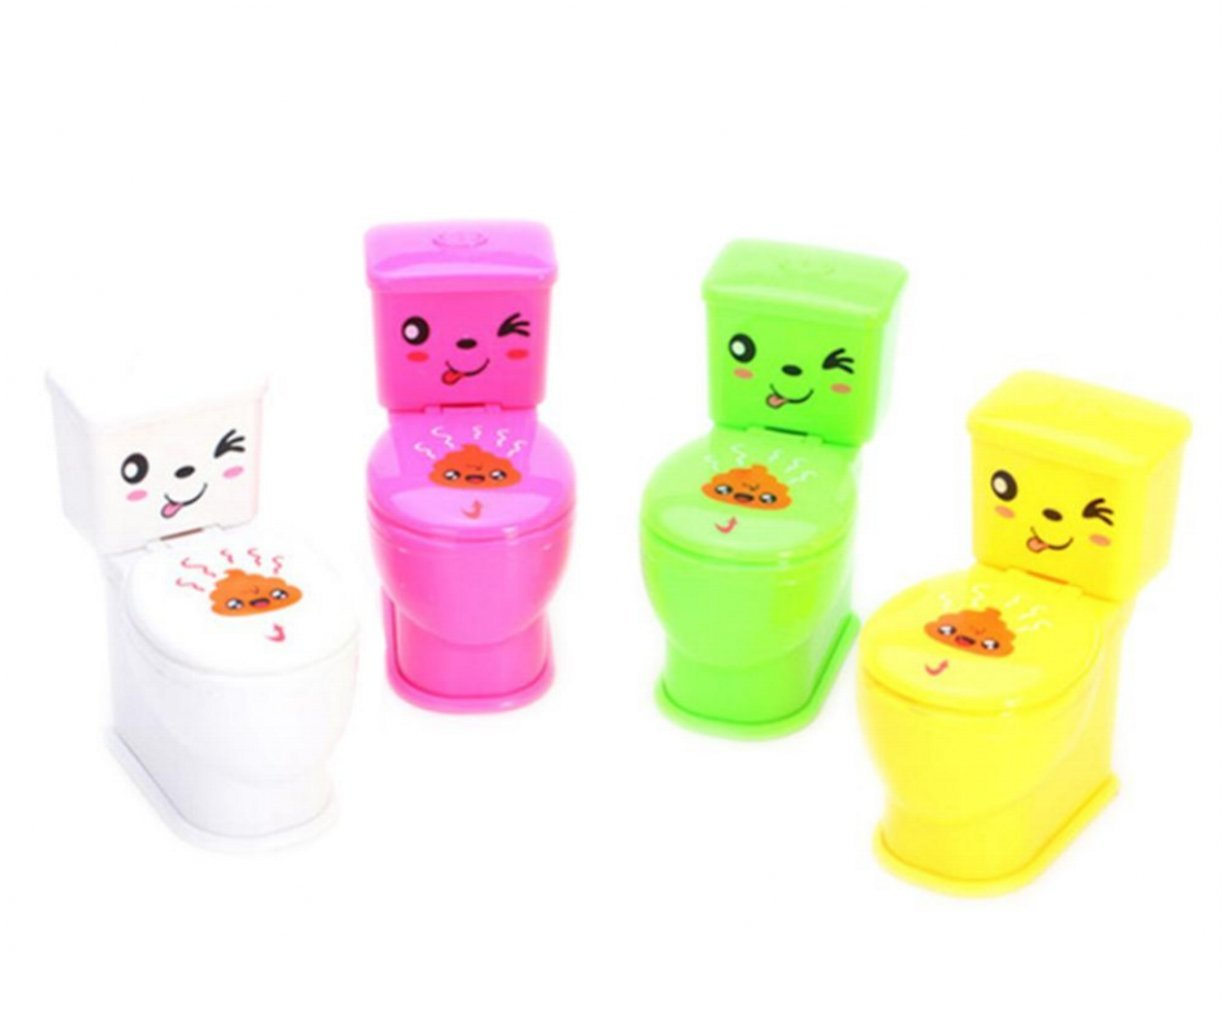 WellieSTR 5 pcs 11x10cm Water Spray Toilet Novelty Tricky Children Toy Anti Stress Funny Gadgets Gifts For Kids Adult Christmas Jokes (random color)